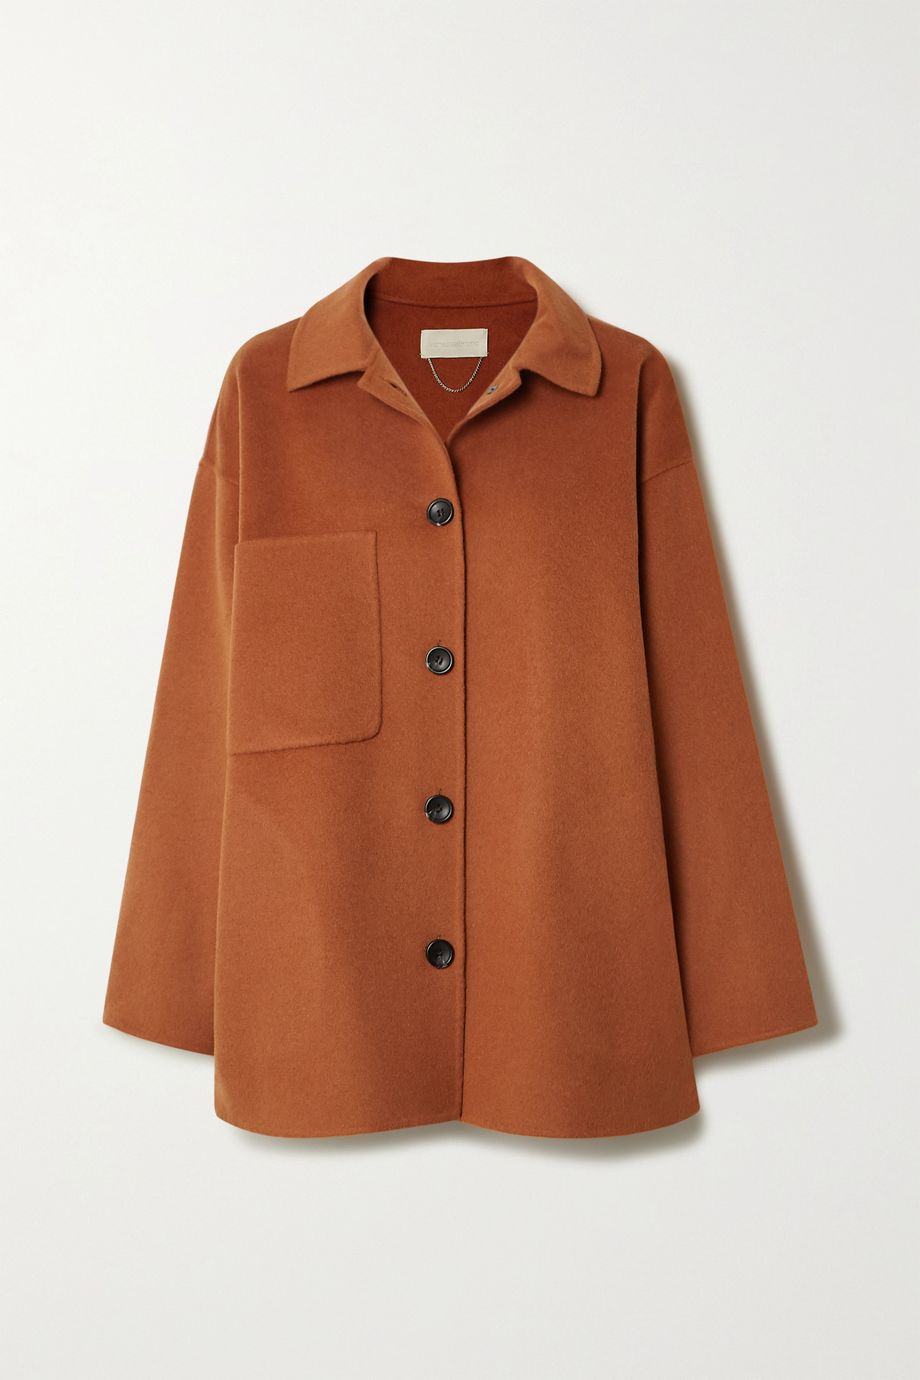 Vanessa Bruno Naïve wool and cashmere-blend coat